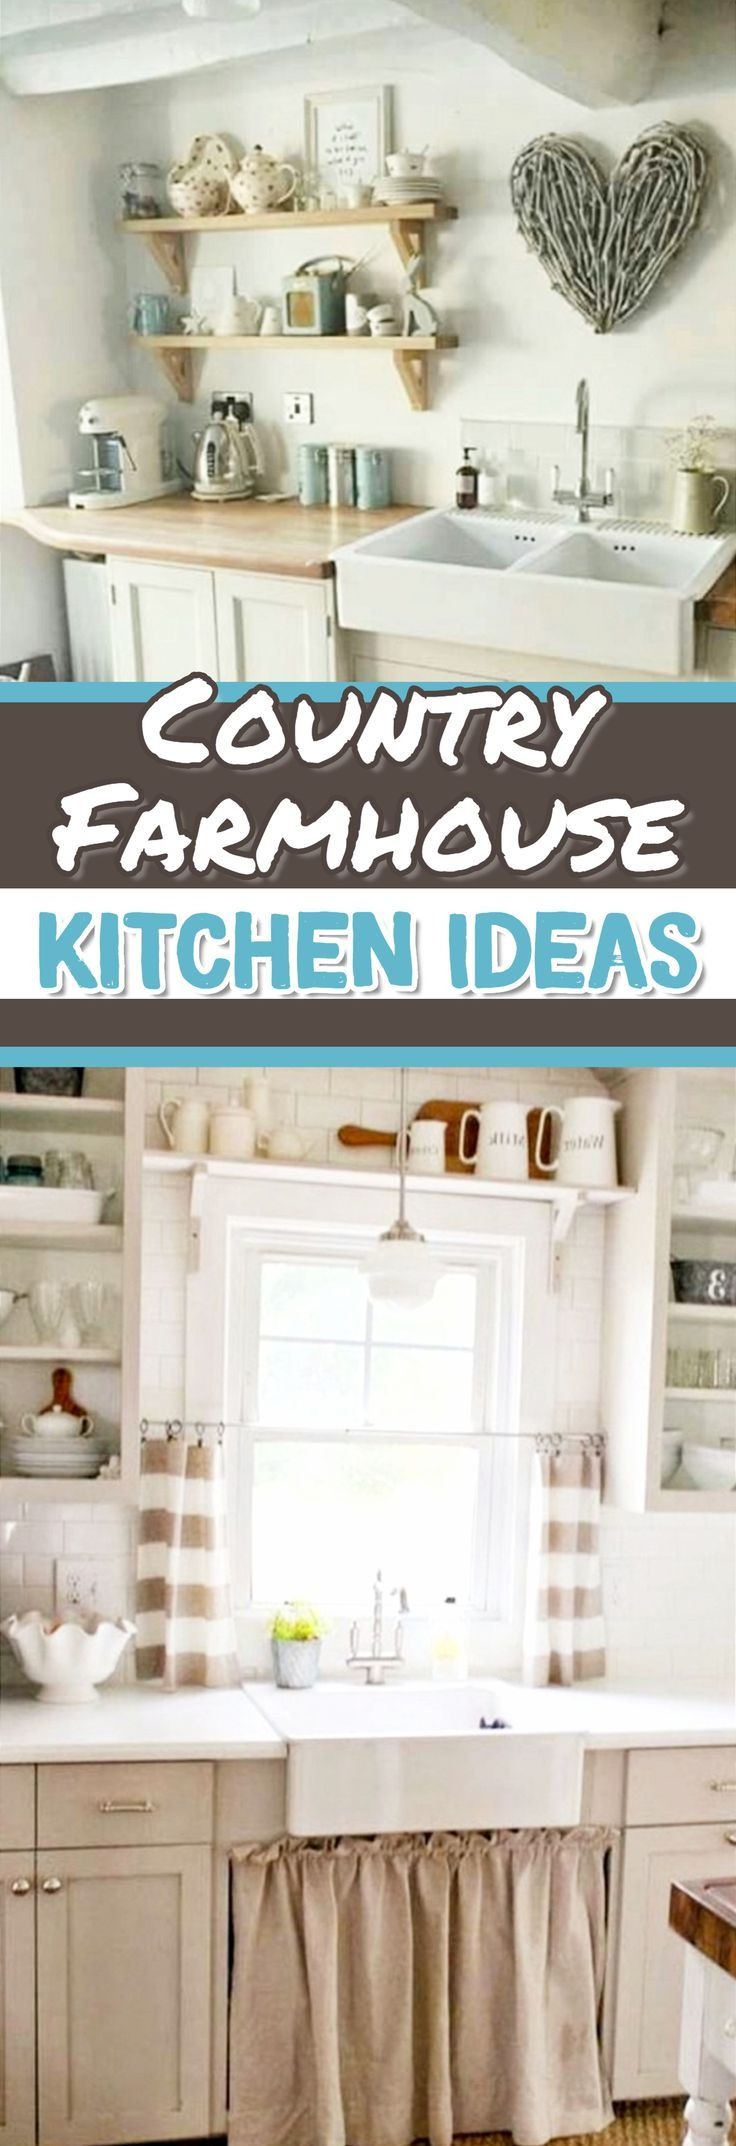 Farmhouse Country Kitchen Designs: 233 Best Farmhouse Country Kitchen DIY Decorating Ideas